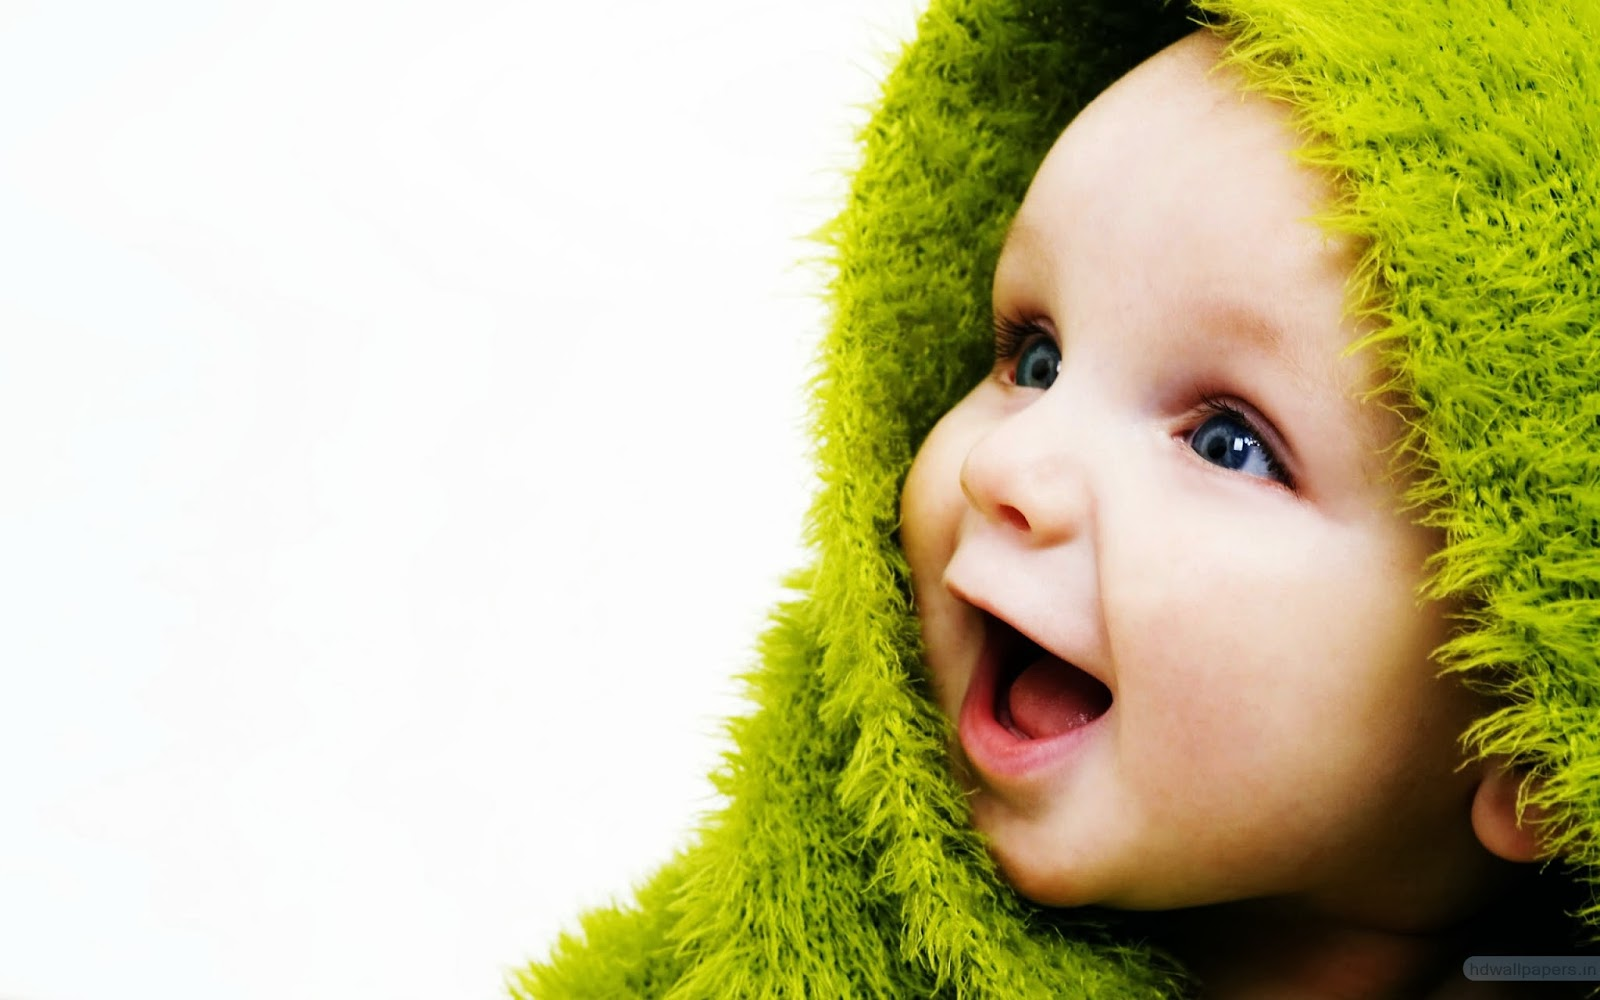 Baby wallpapers hd beautiful wallpapers collection 2014 - Beautiful baby wallpapers ...